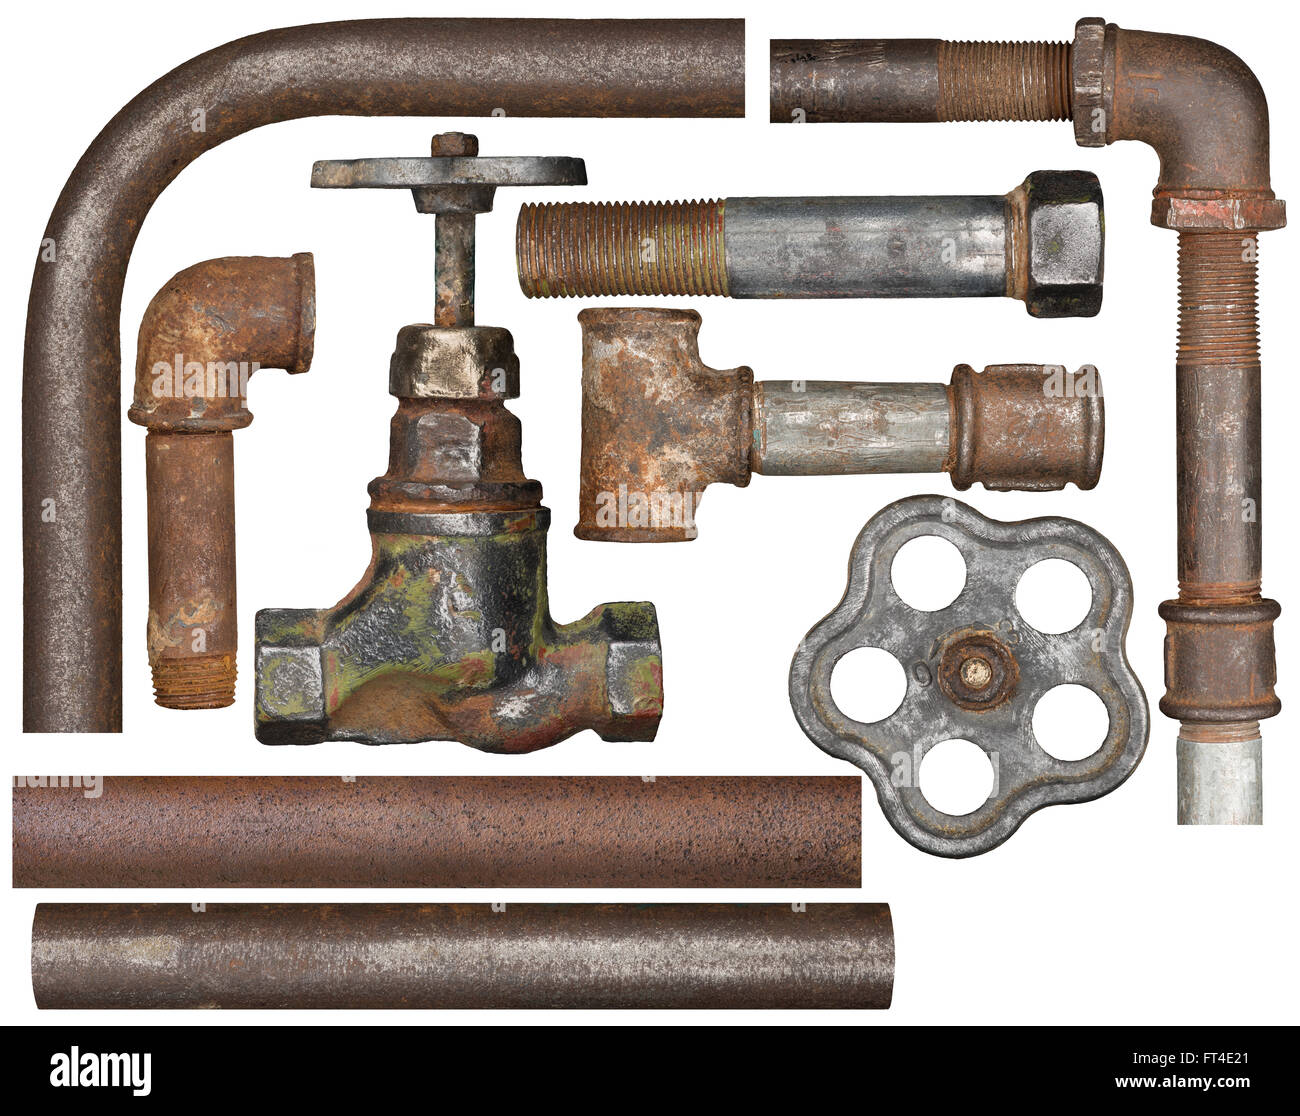 Rusty Water Faucet Plumbing Stock Photos & Rusty Water Faucet ...